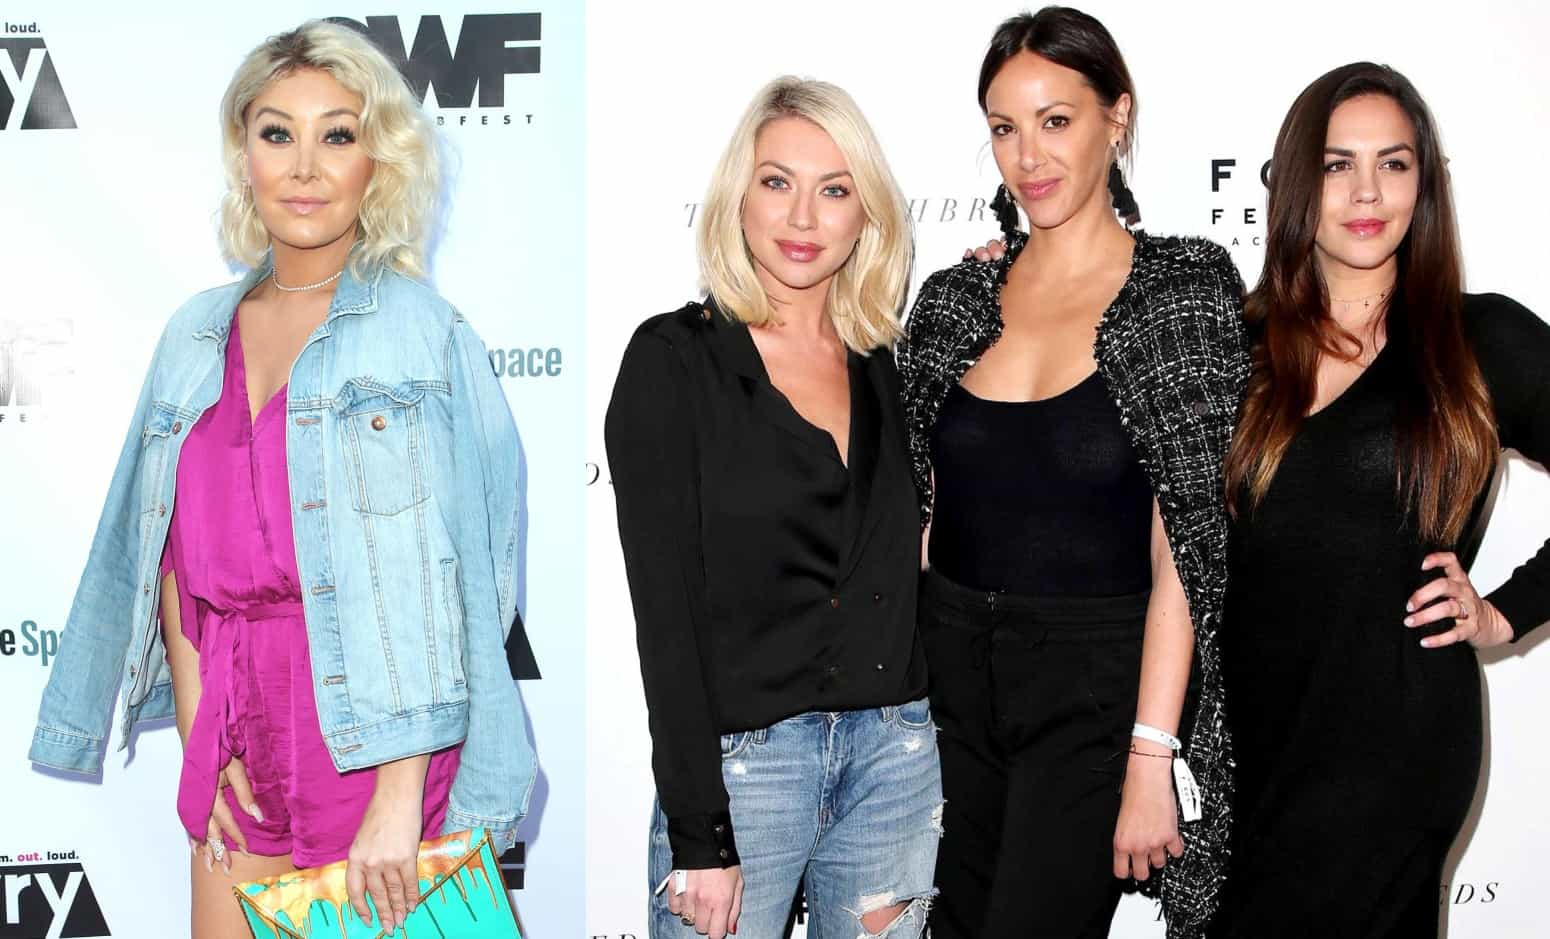 Vanderpump Rules Stassi Schroeder, Kristen Doute, Katie Maloney vs Billie Lee